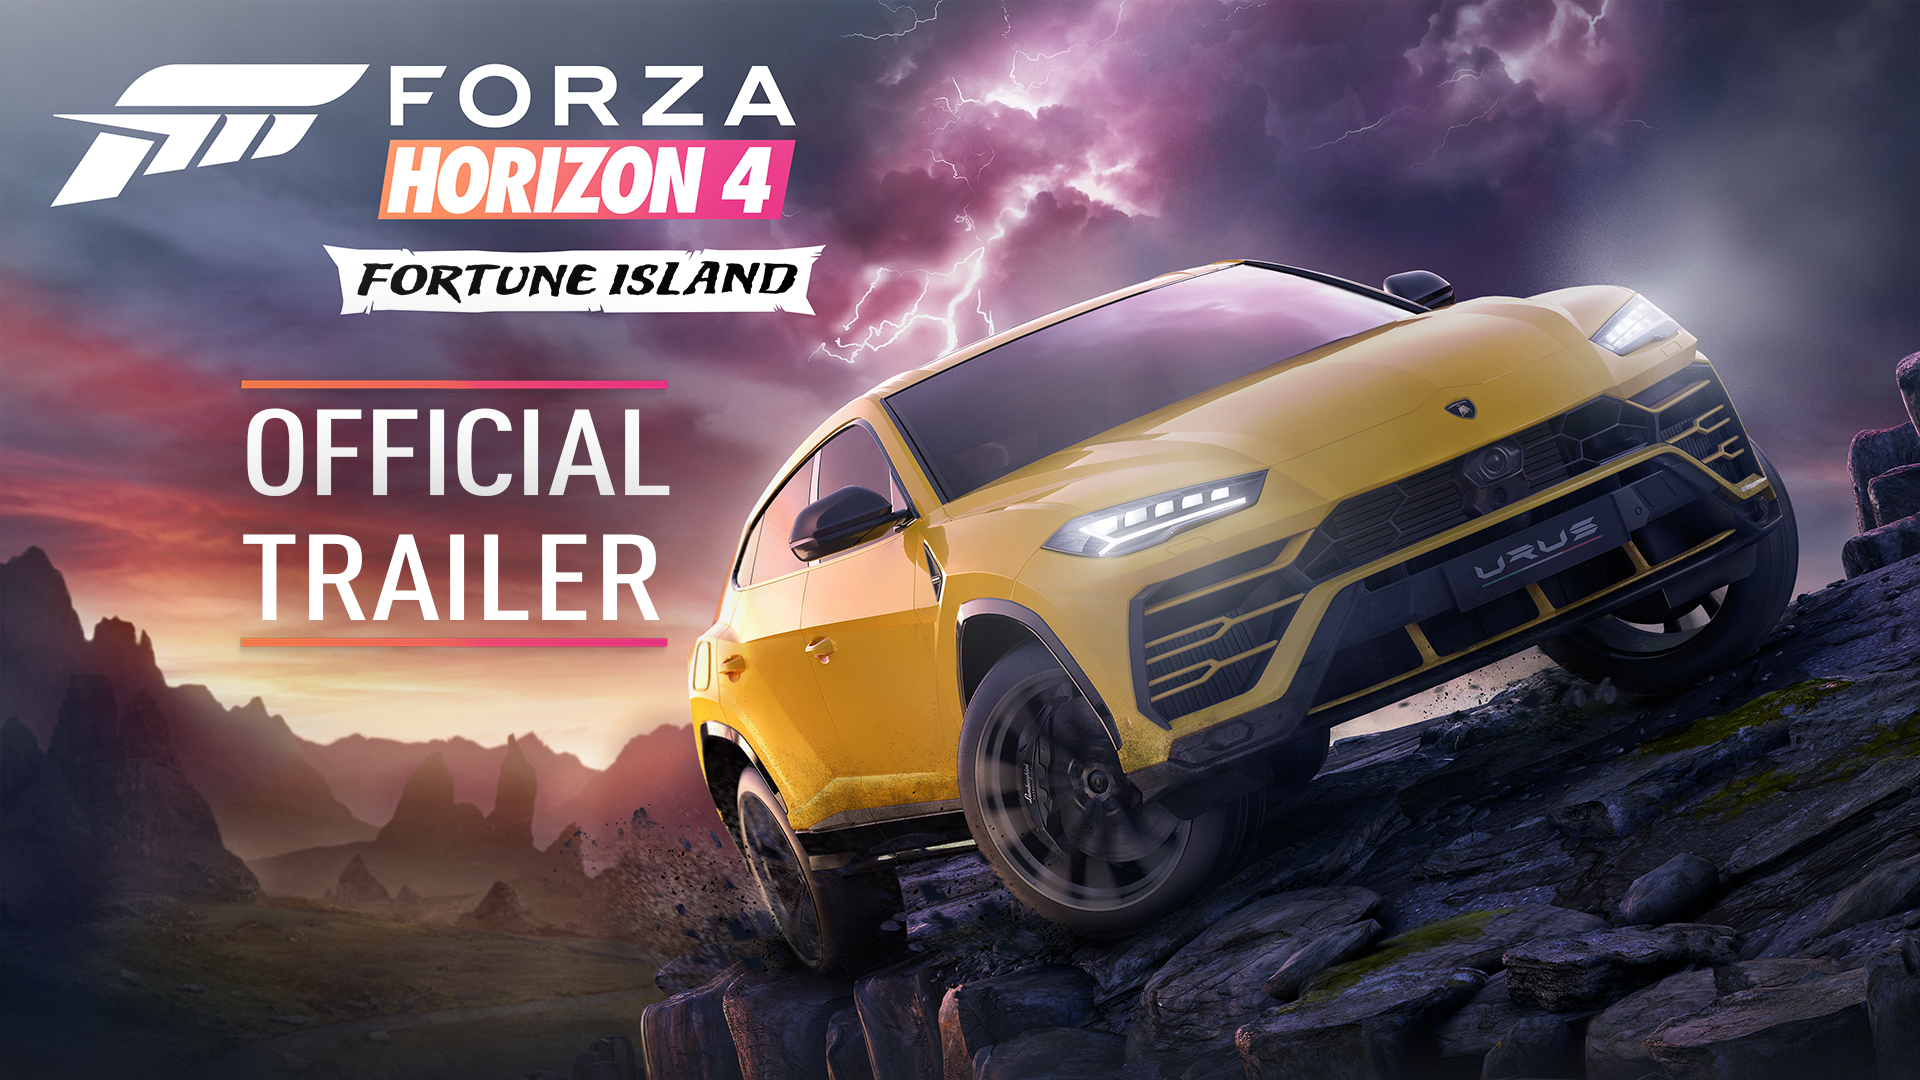 forza horizon 4 ultimate edition pre order bonus